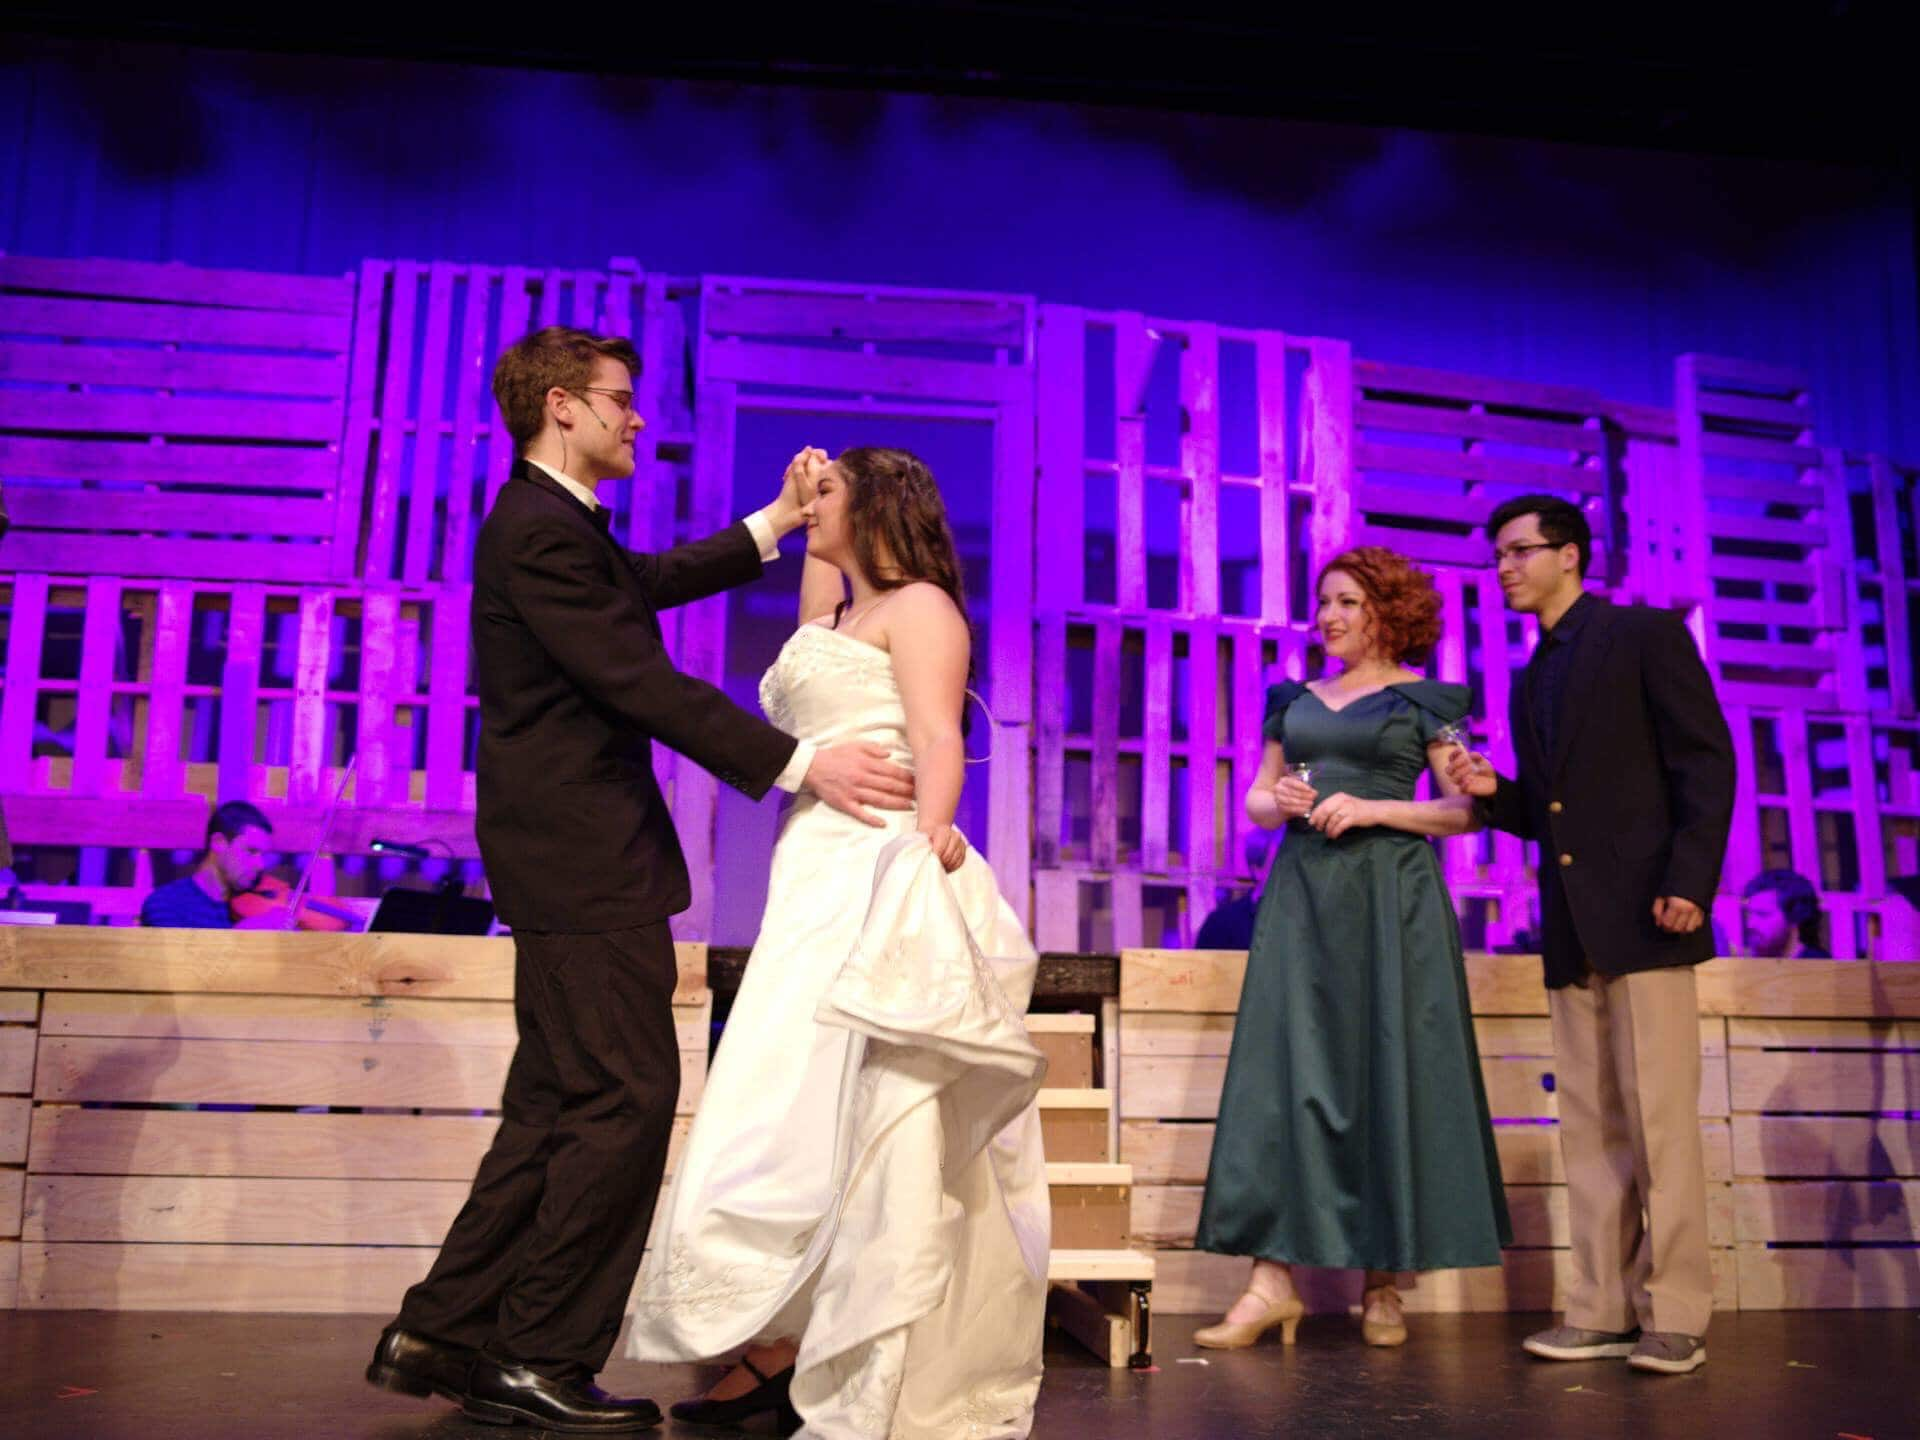 """Michael Nugent, Missy Spangler, Emily Mudd, and Luis """"Matty"""" Montes in Big Fish. Photo by John Cholod."""